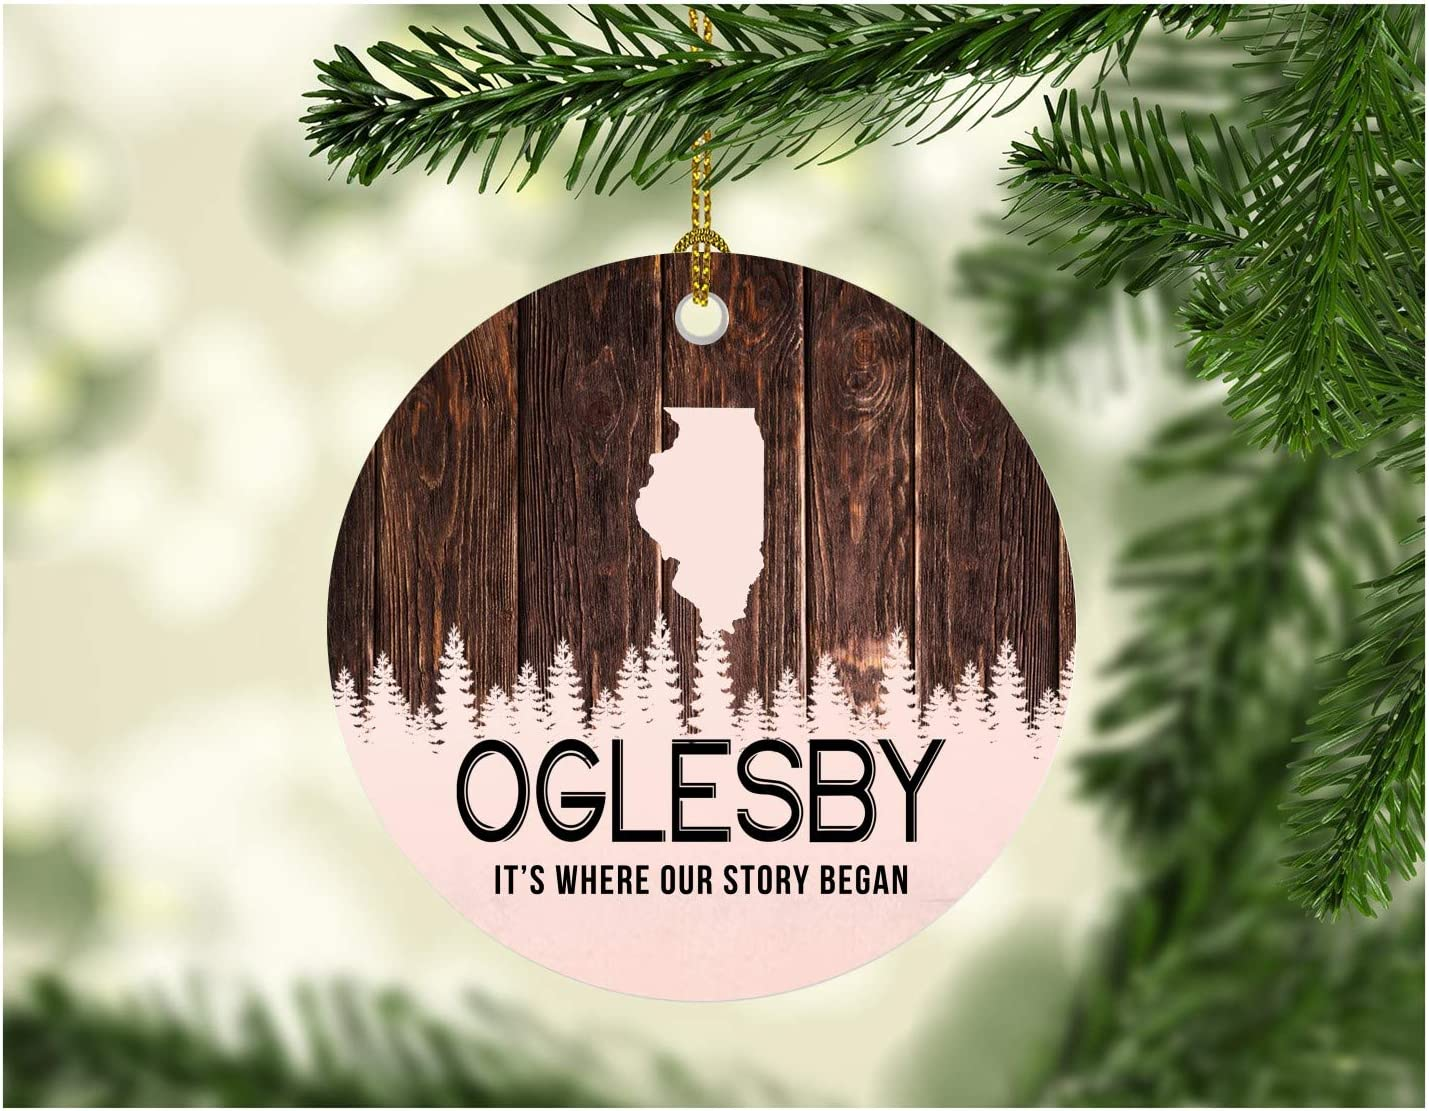 Christmas Tree Ornament 2020 Oglesby Illinois It's Where Our Story Began - Merry Christmas Ornament Family Pretty Rustic Holiday Xmas Tree Decoration 3